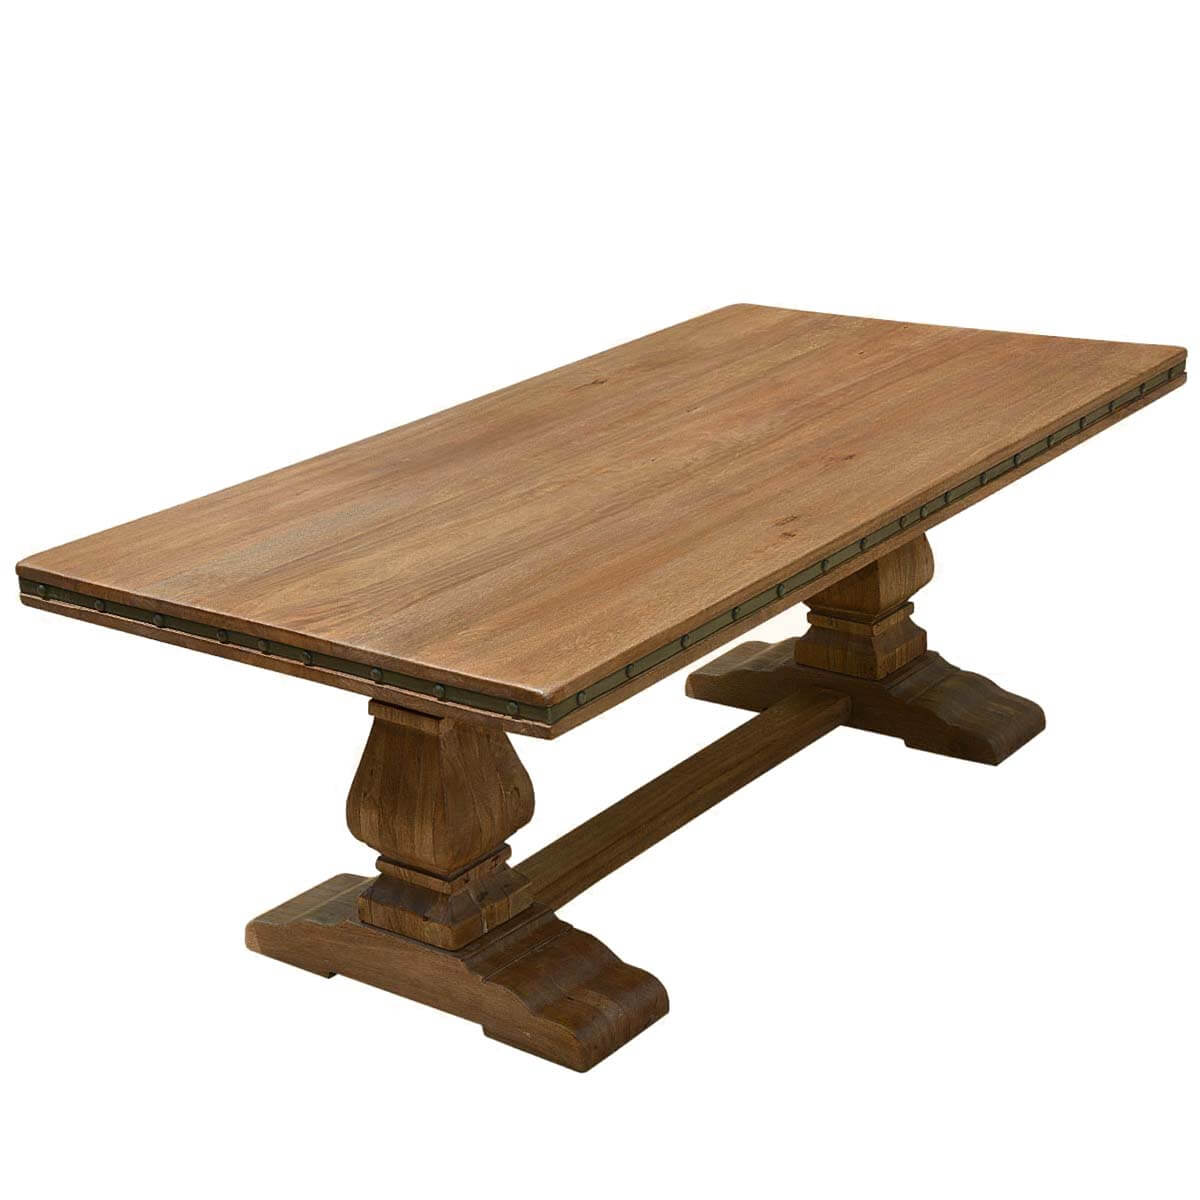 Wooden Dining Table Base ~ Rustic solid wood trestle pedestal base harvest dining table